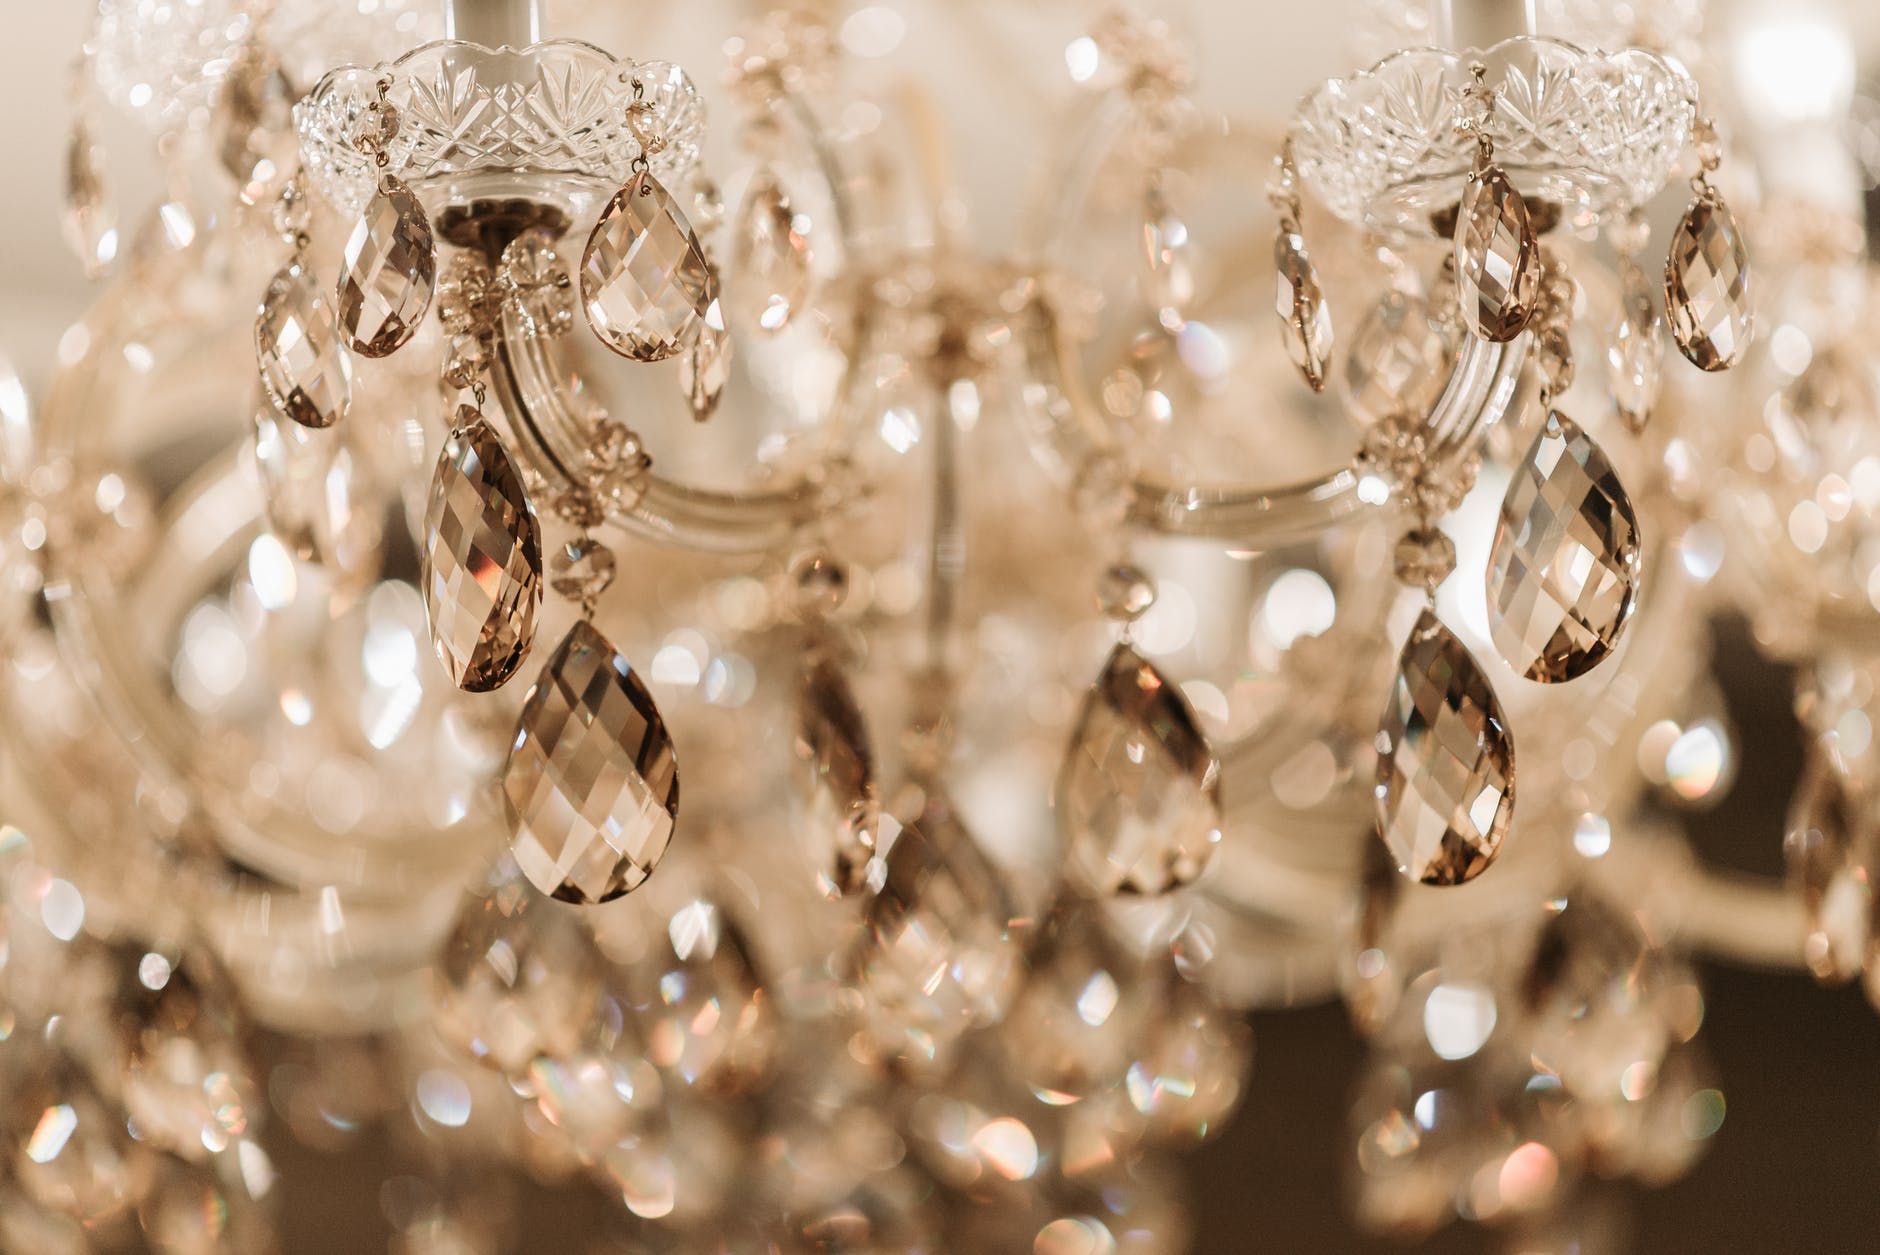 close up shot of a crystal chandelier